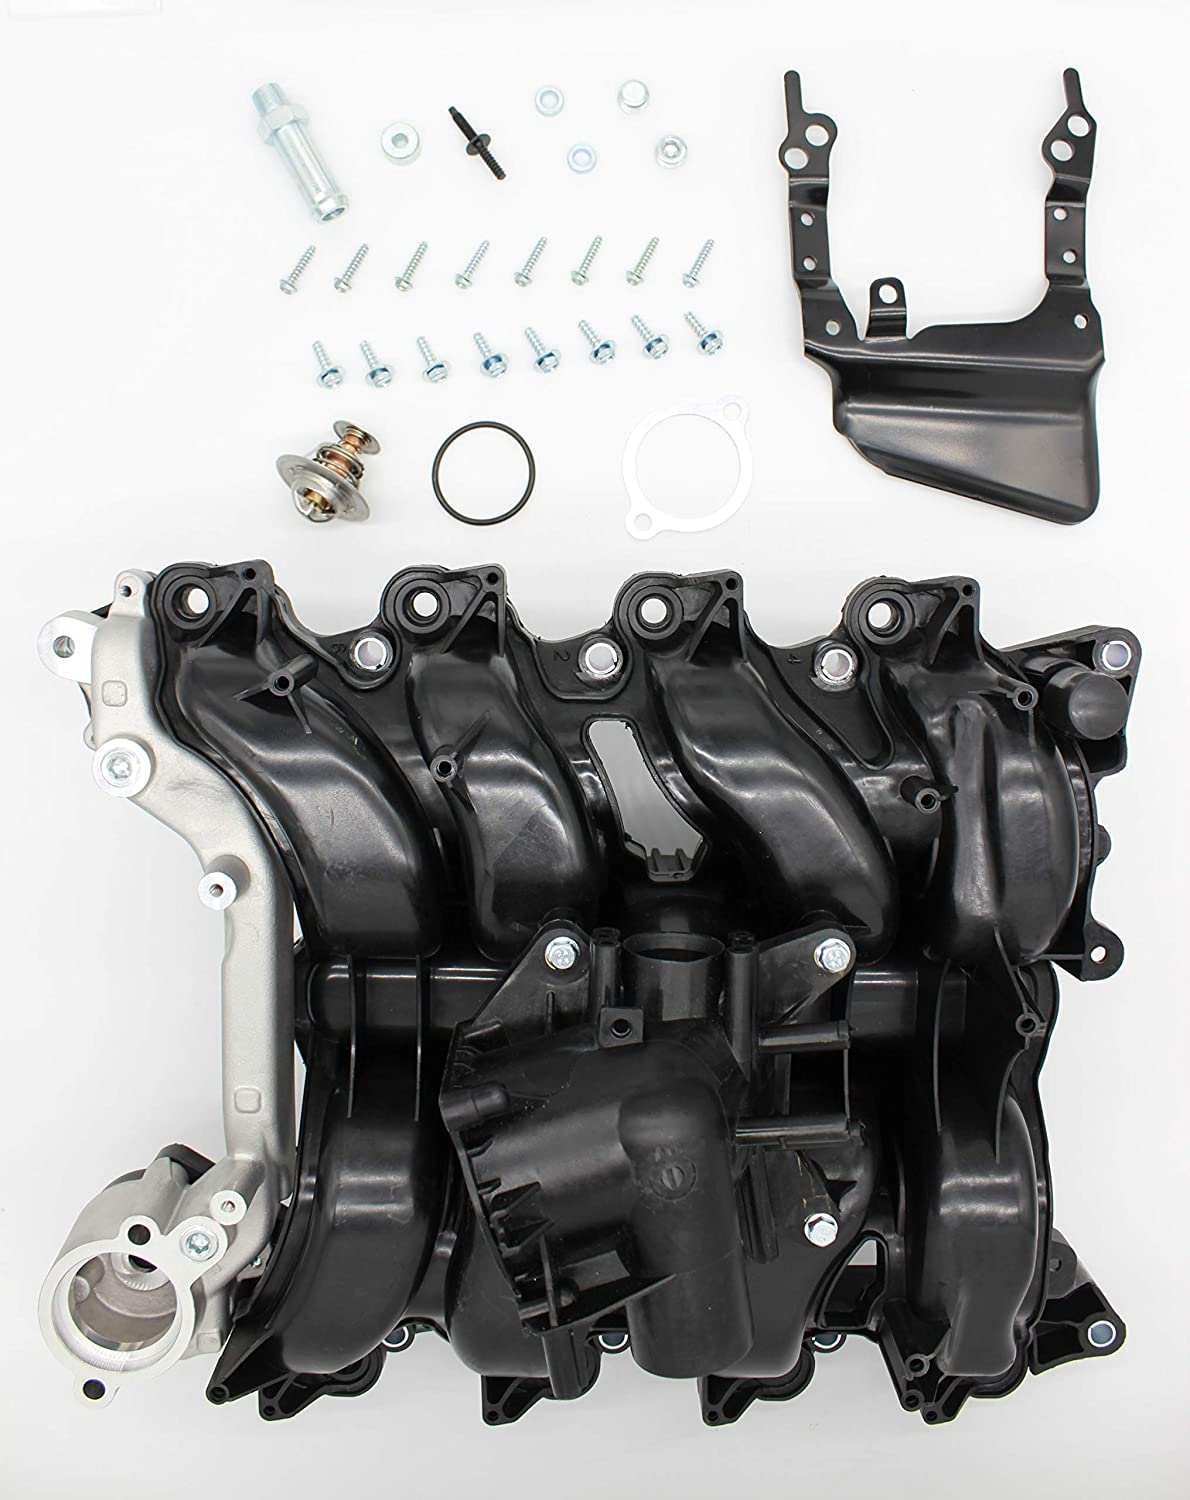 MEXICO Forrie Upper Plastic Intake Manifold w//Gaskets 615376 for 4.6L FORD E150,E250,F150,LOBO